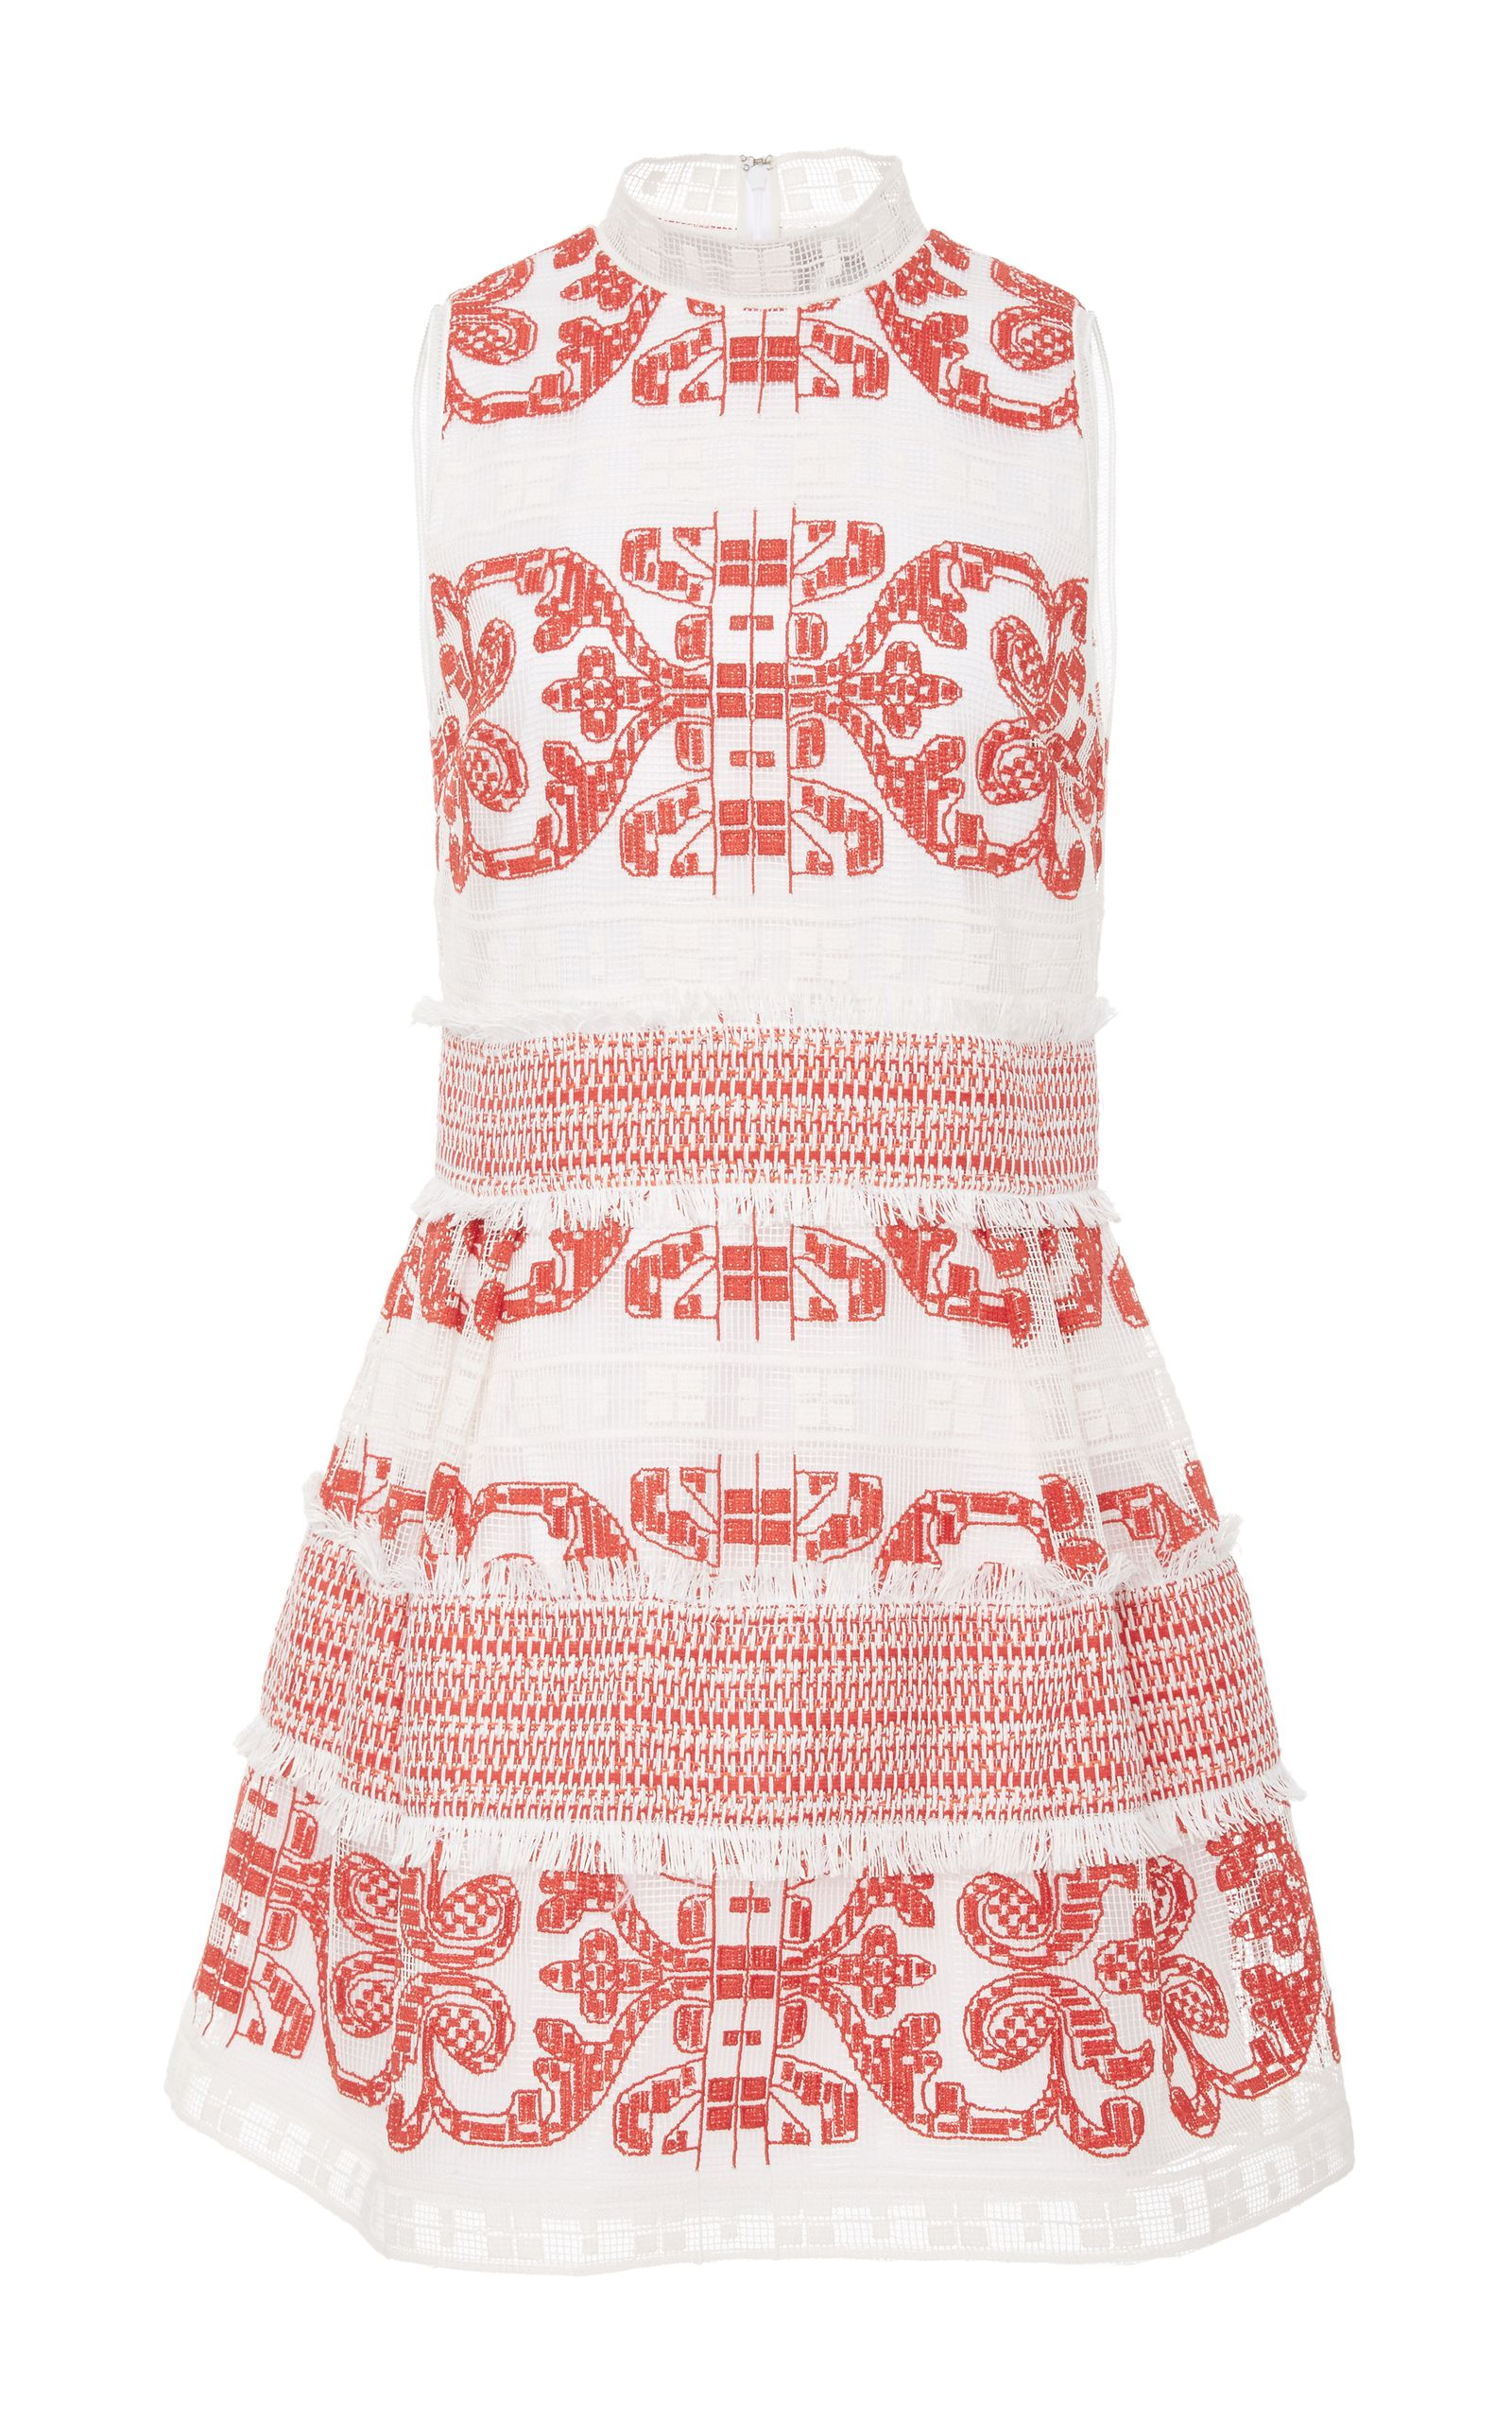 9c607aa1f02 This   Alexis   Minika Embroidered Mini Dress features a band collar